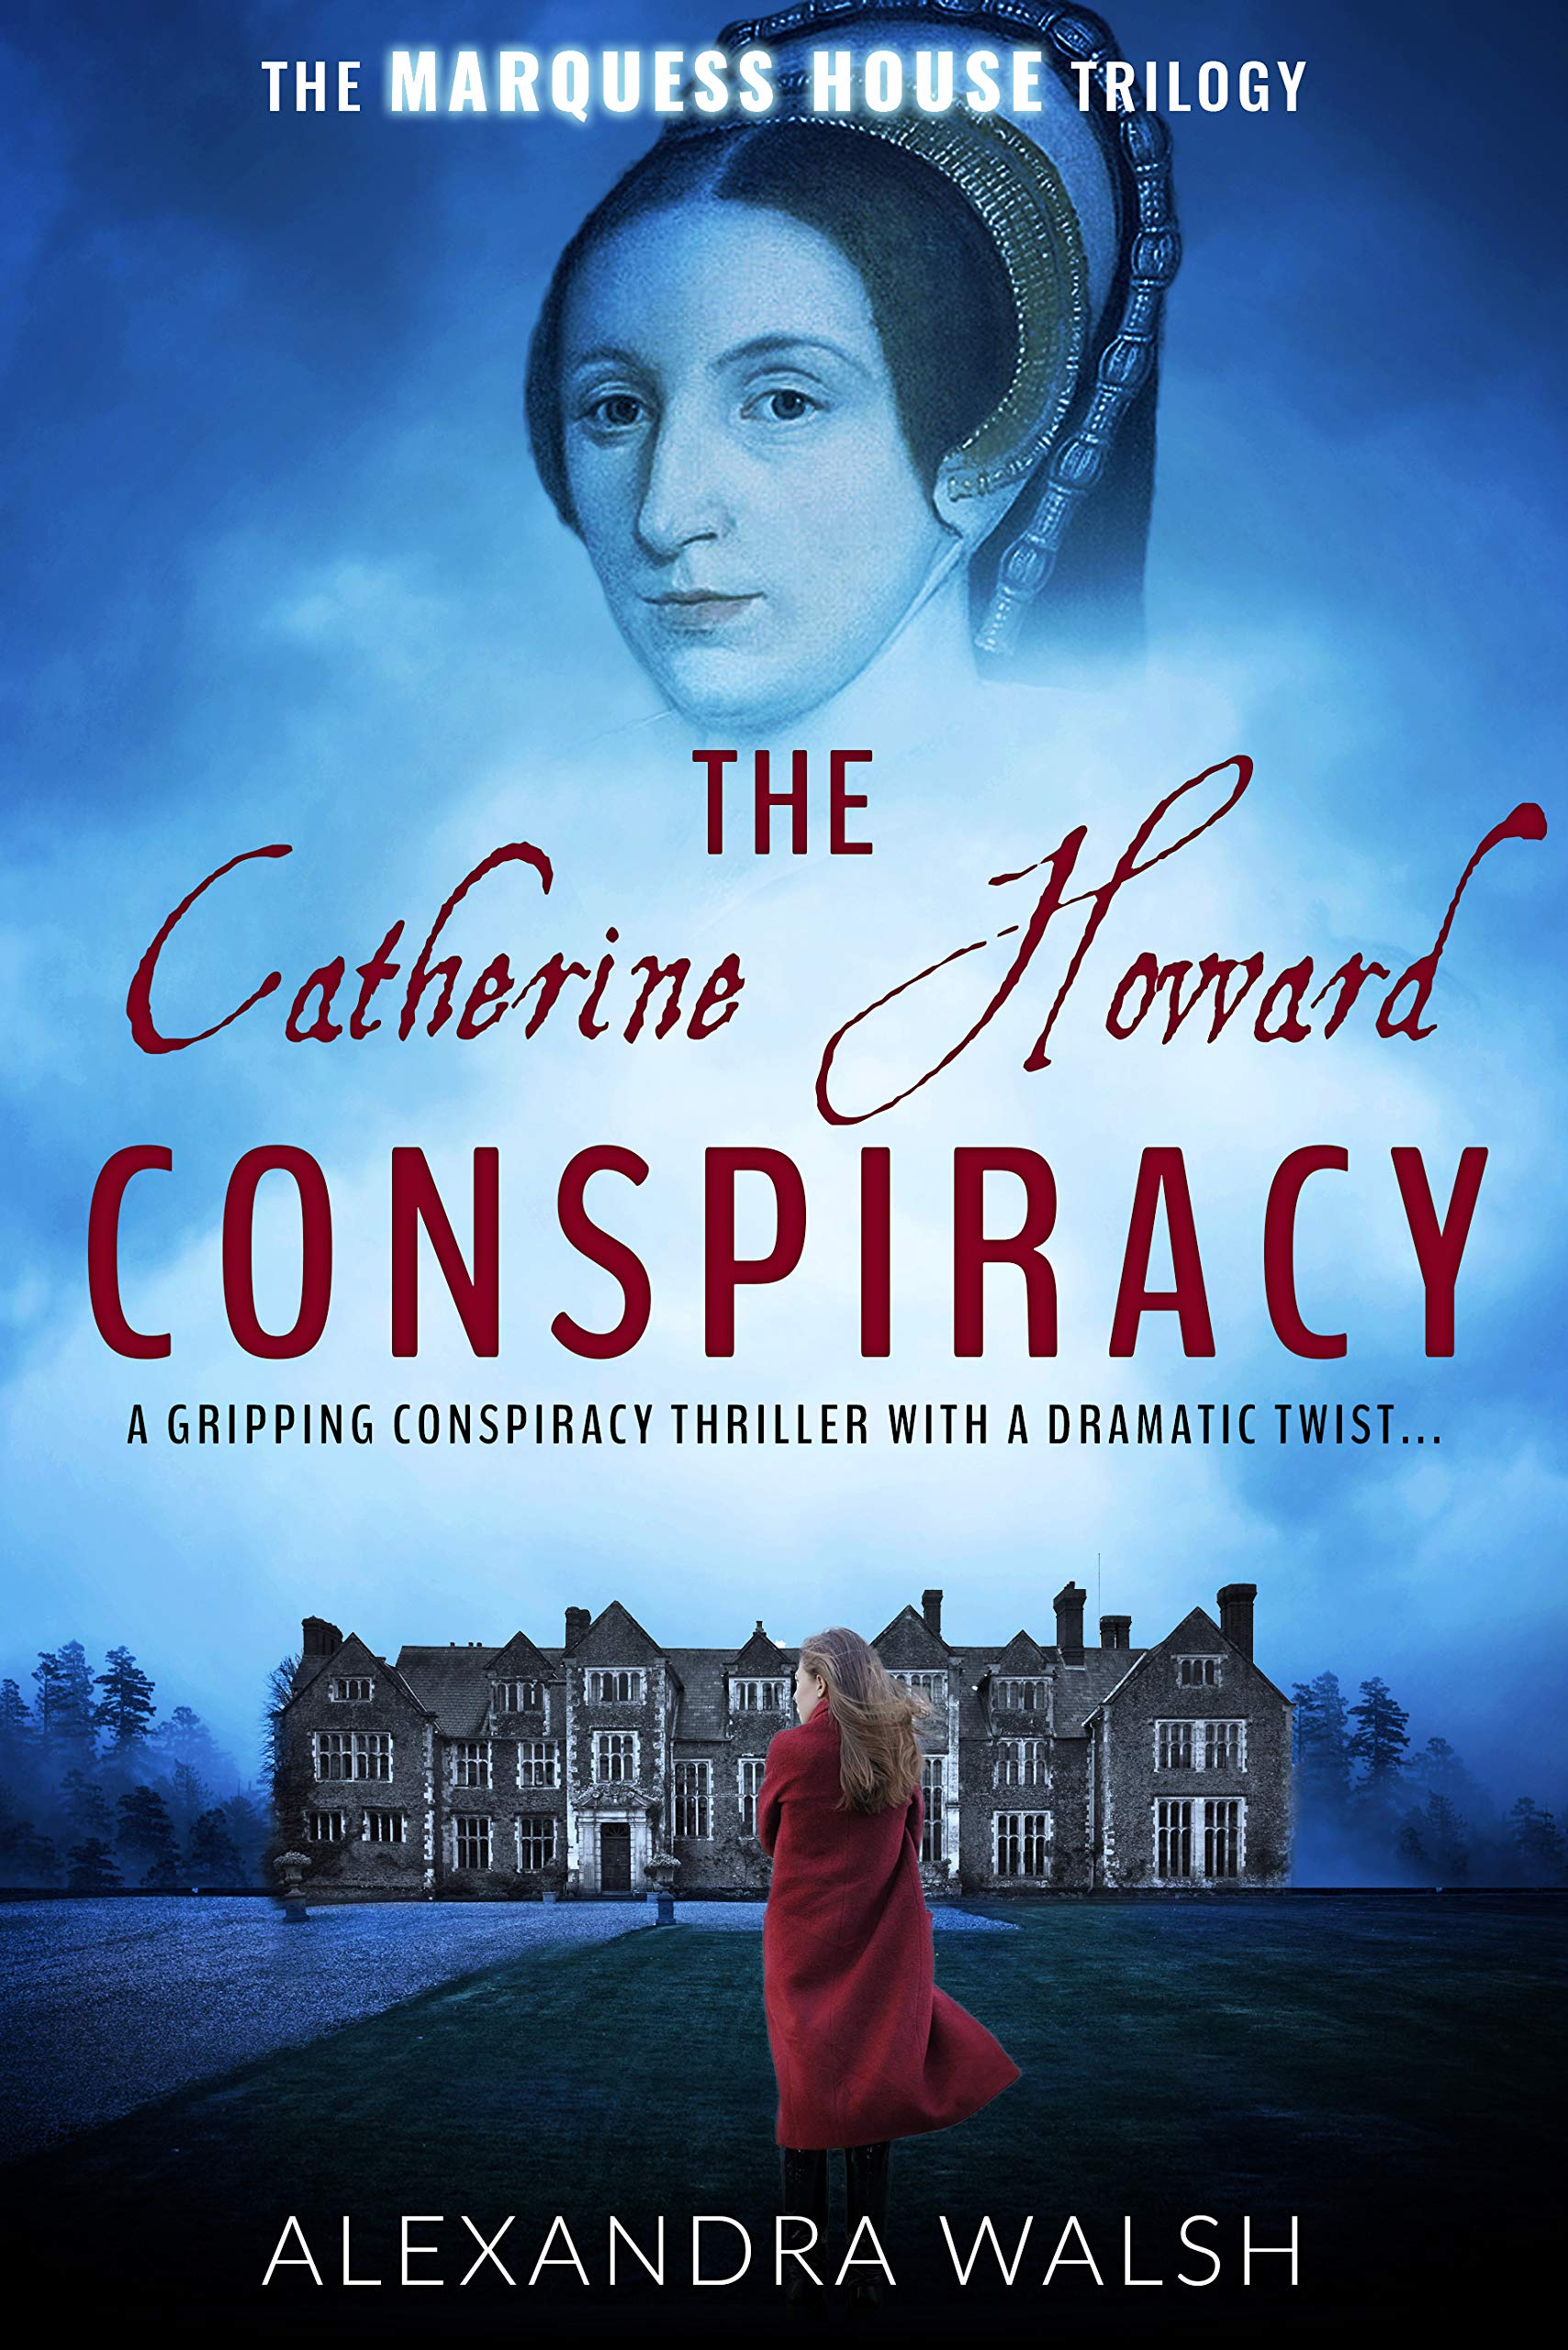 The Catherine Howard Conspiracy: A gripping conspiracy thriller with a dramatic twist (The Marquess House Trilogy Book 1) por Alexandra Walsh